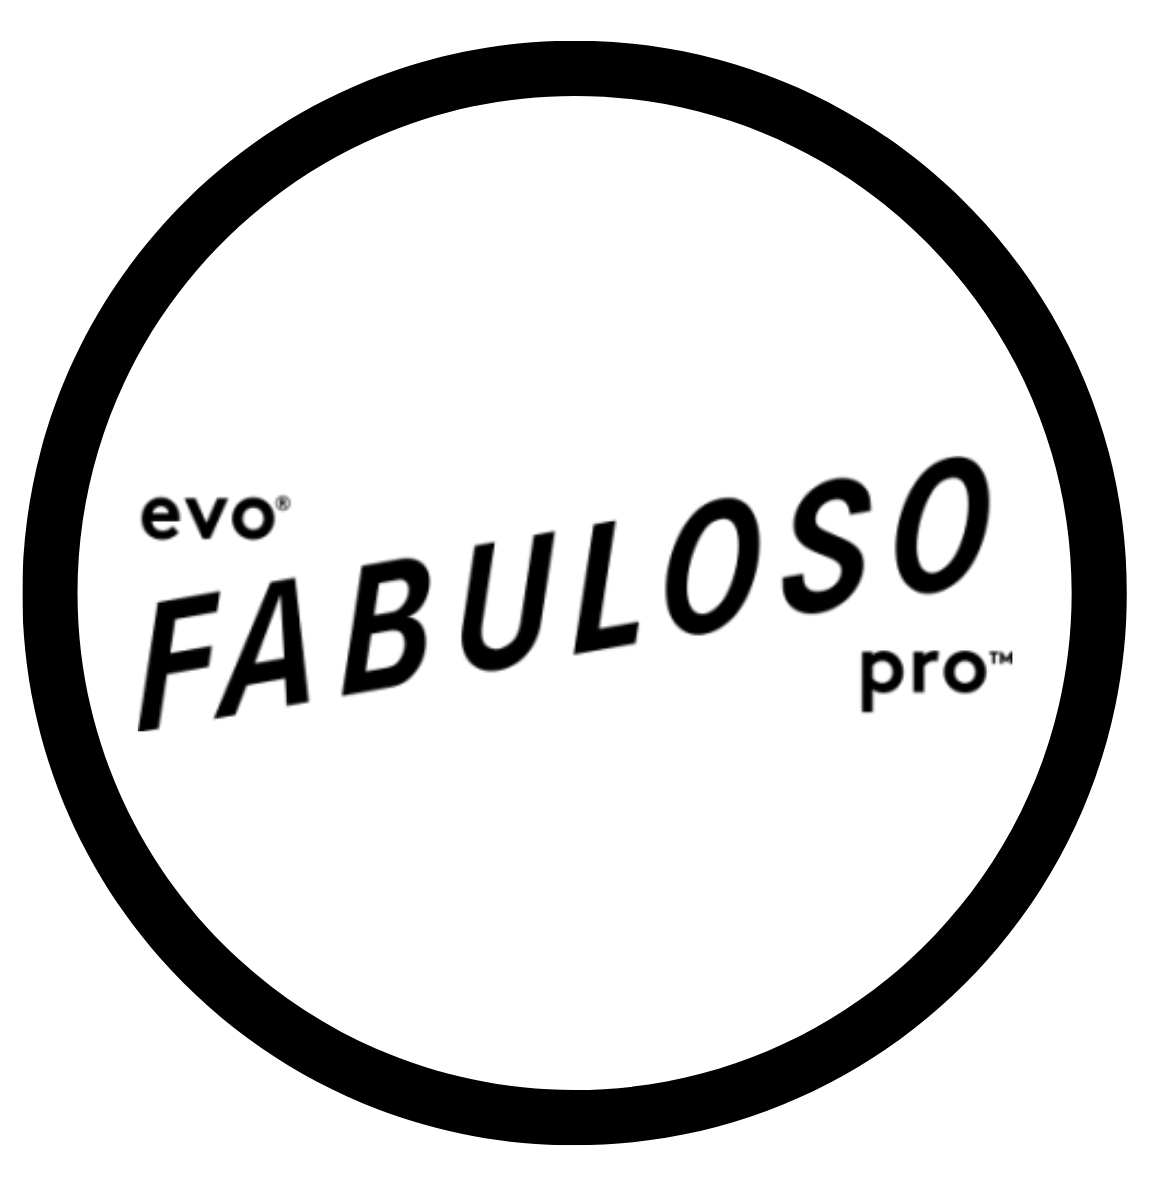 Fabuloso pro and Staino